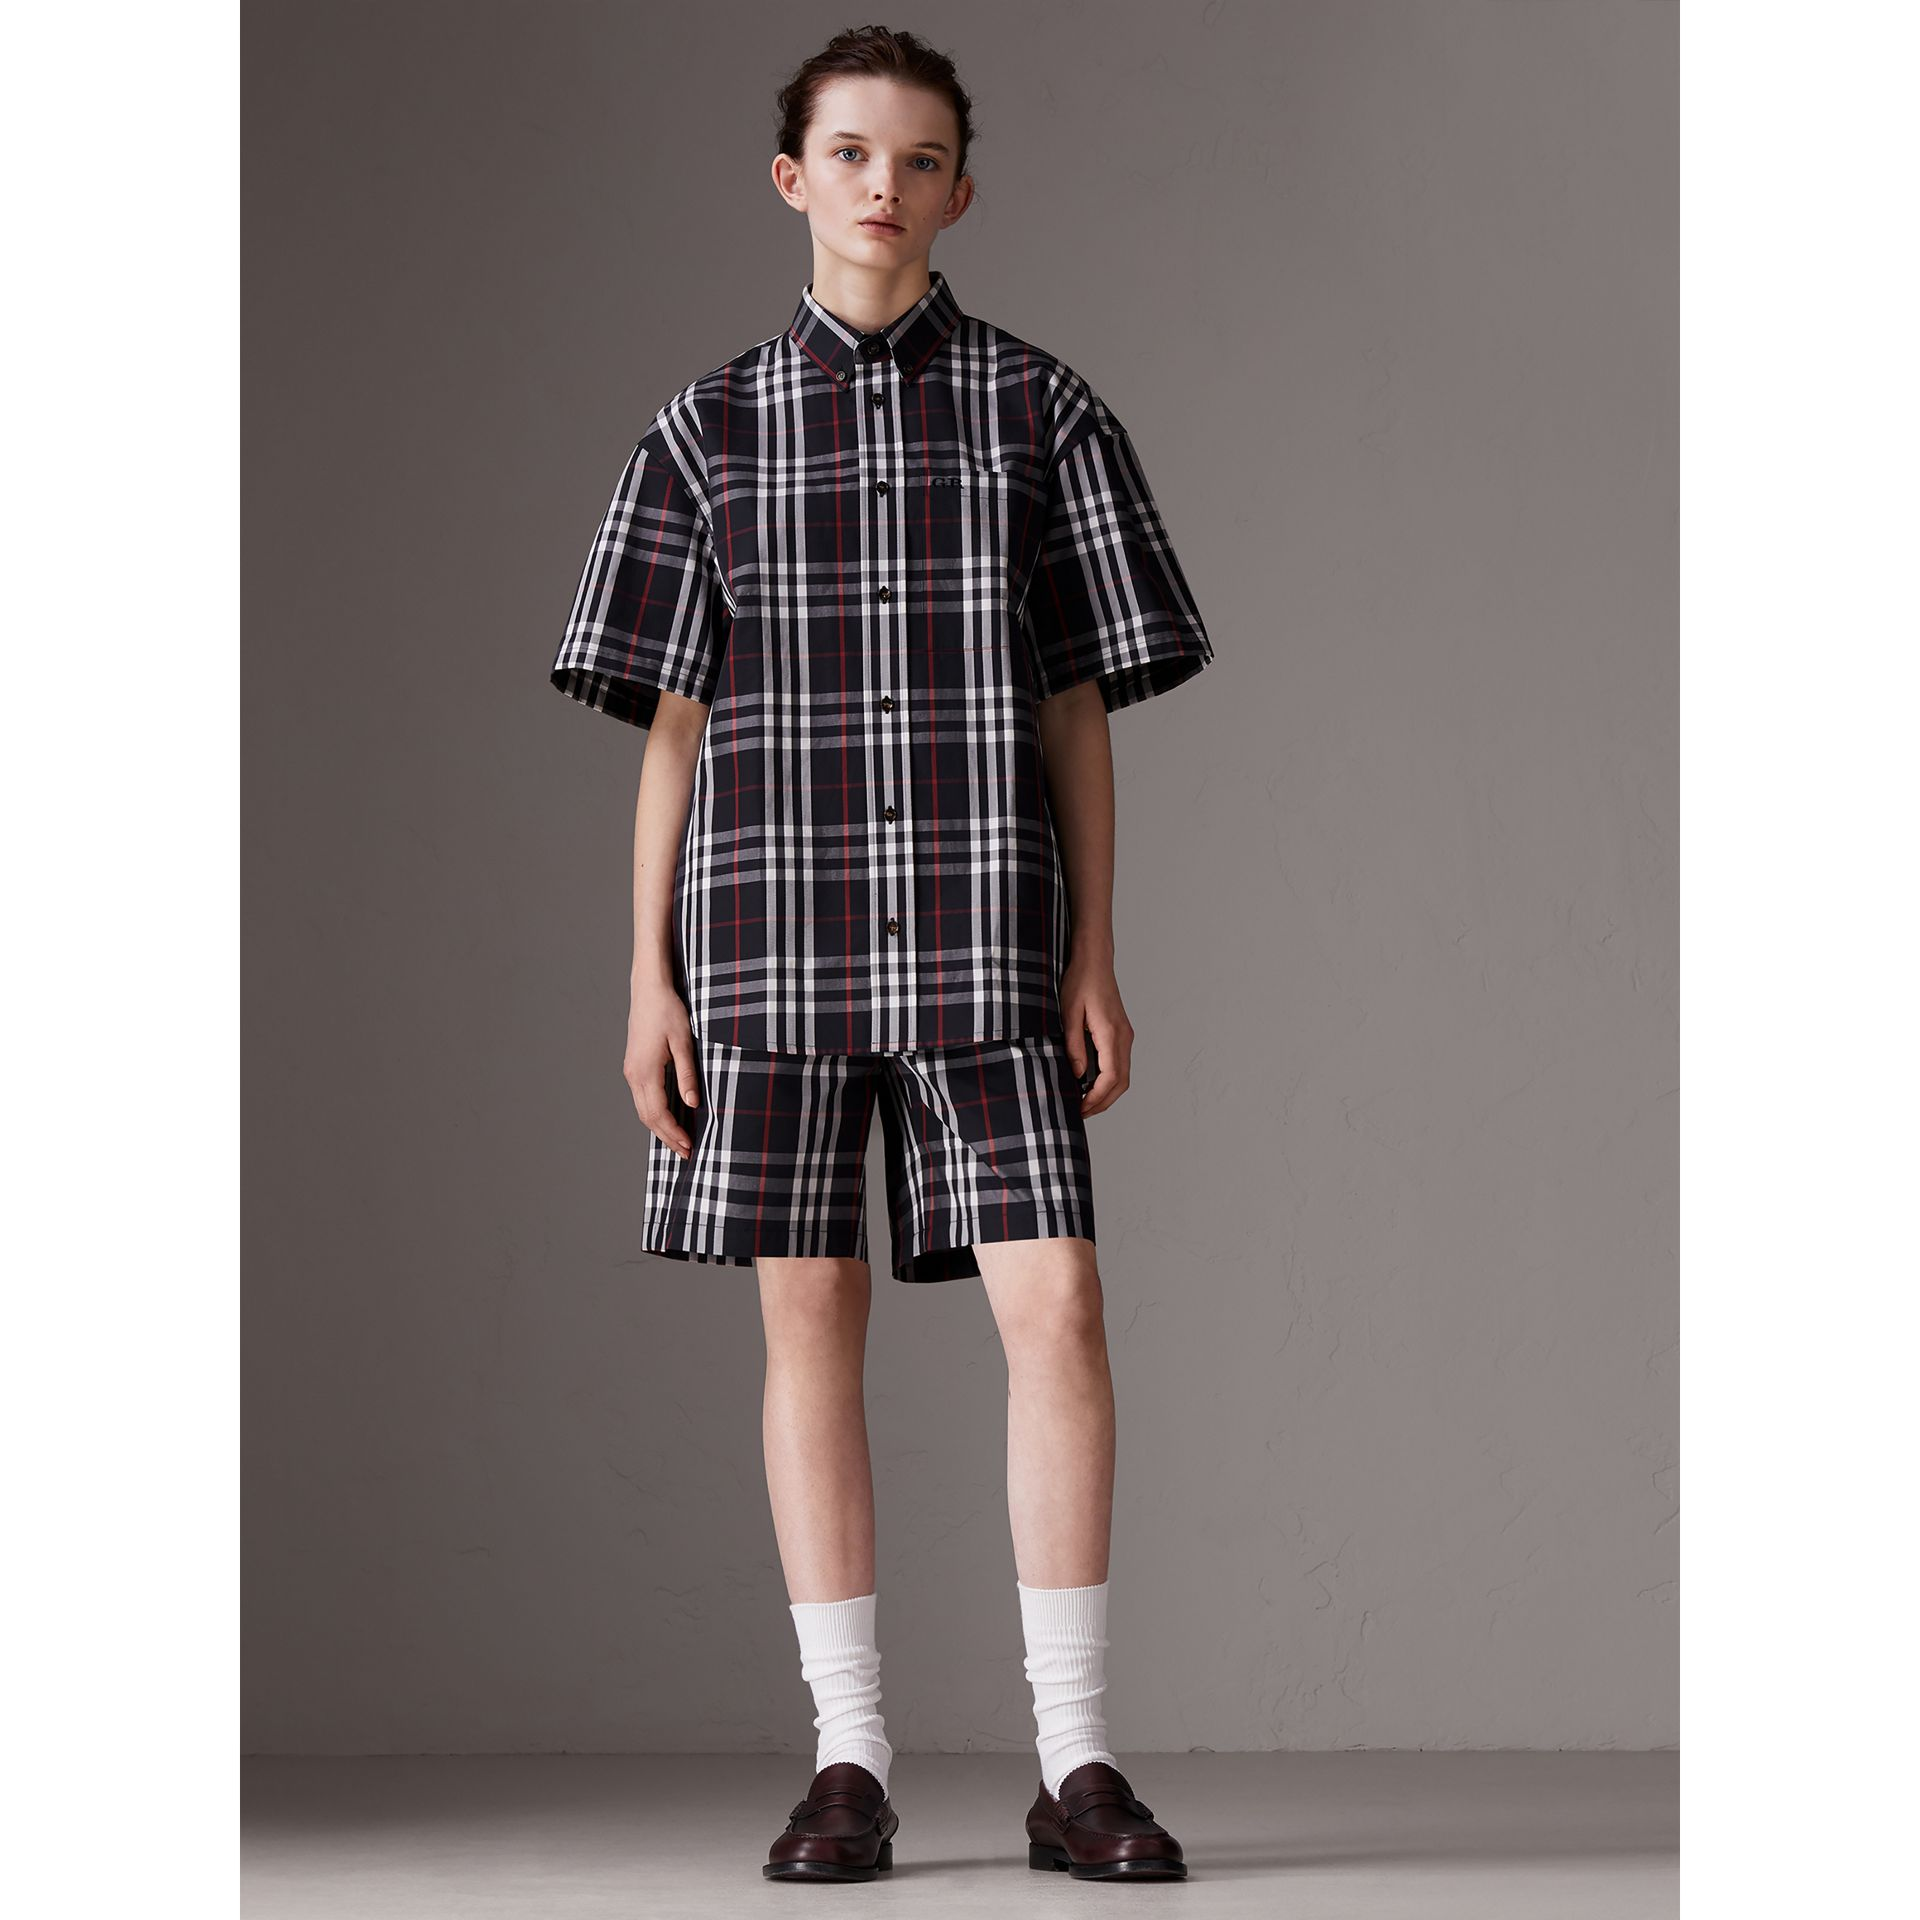 Gosha x Burberry Short-sleeve Check Shirt in Navy | Burberry United Kingdom - gallery image 3